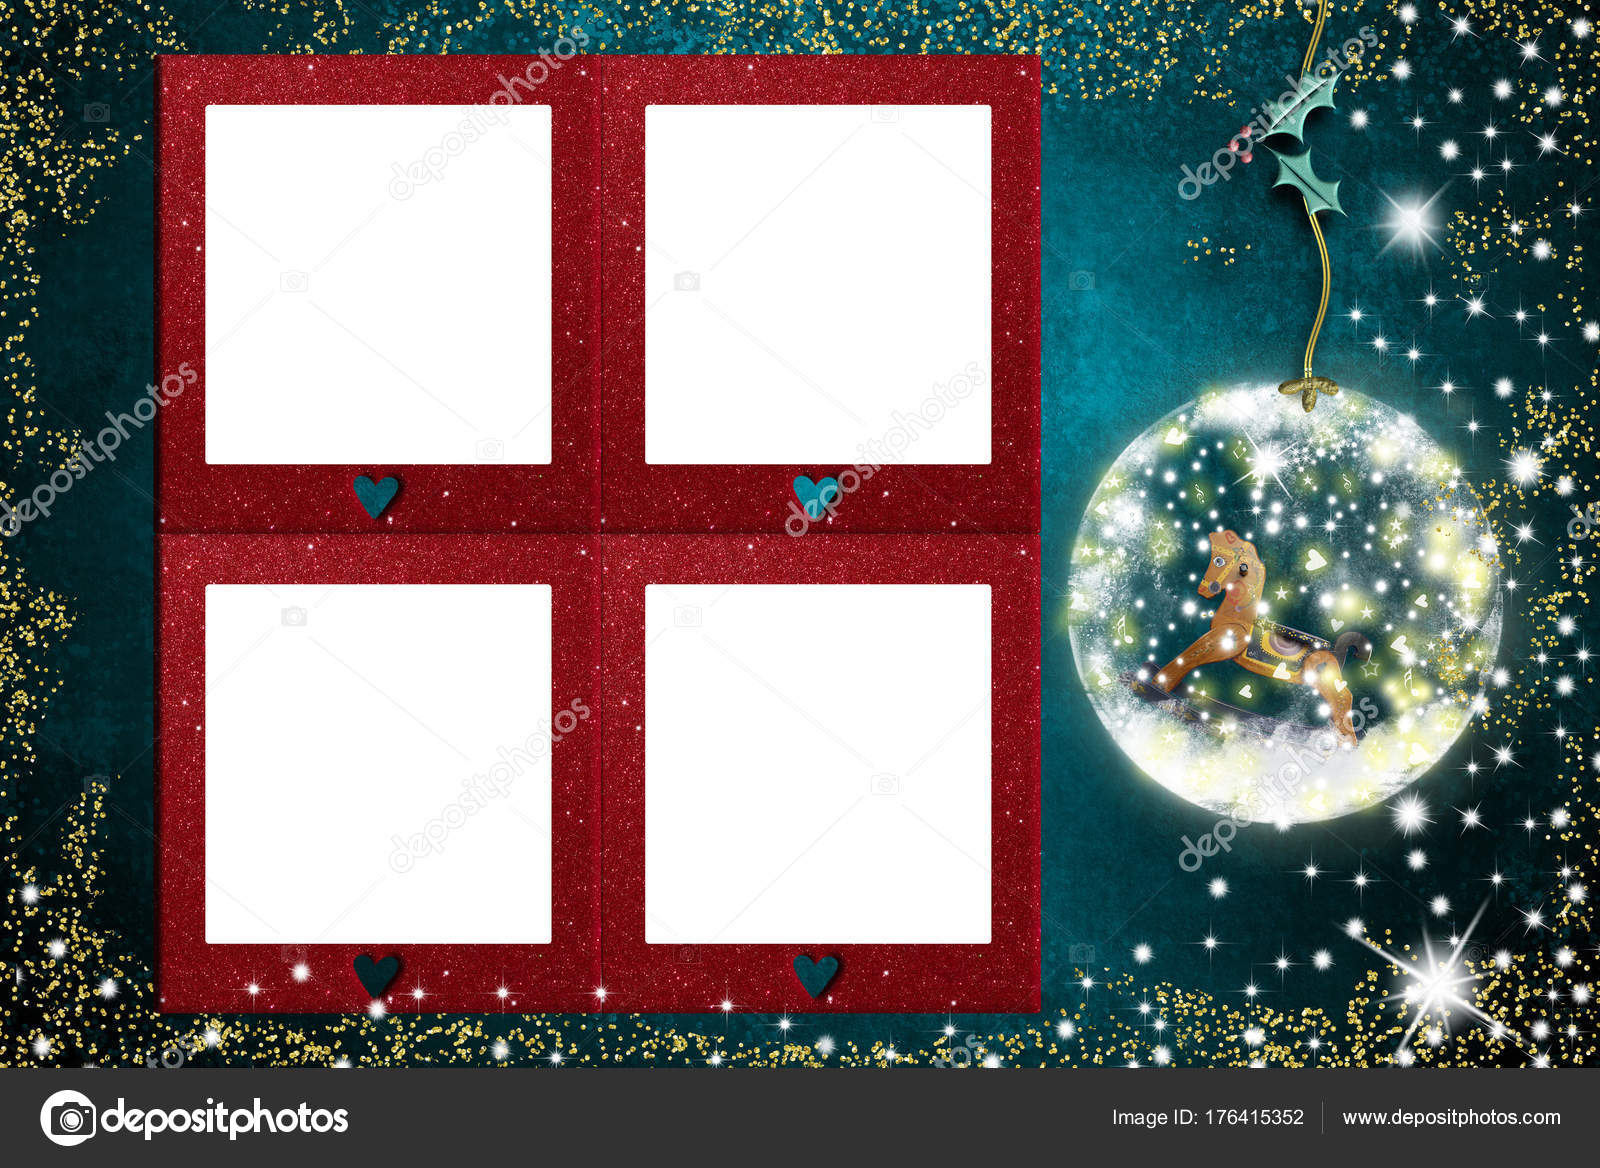 Four Photo frames Christmas card — Stock Photo © Risia #176415352